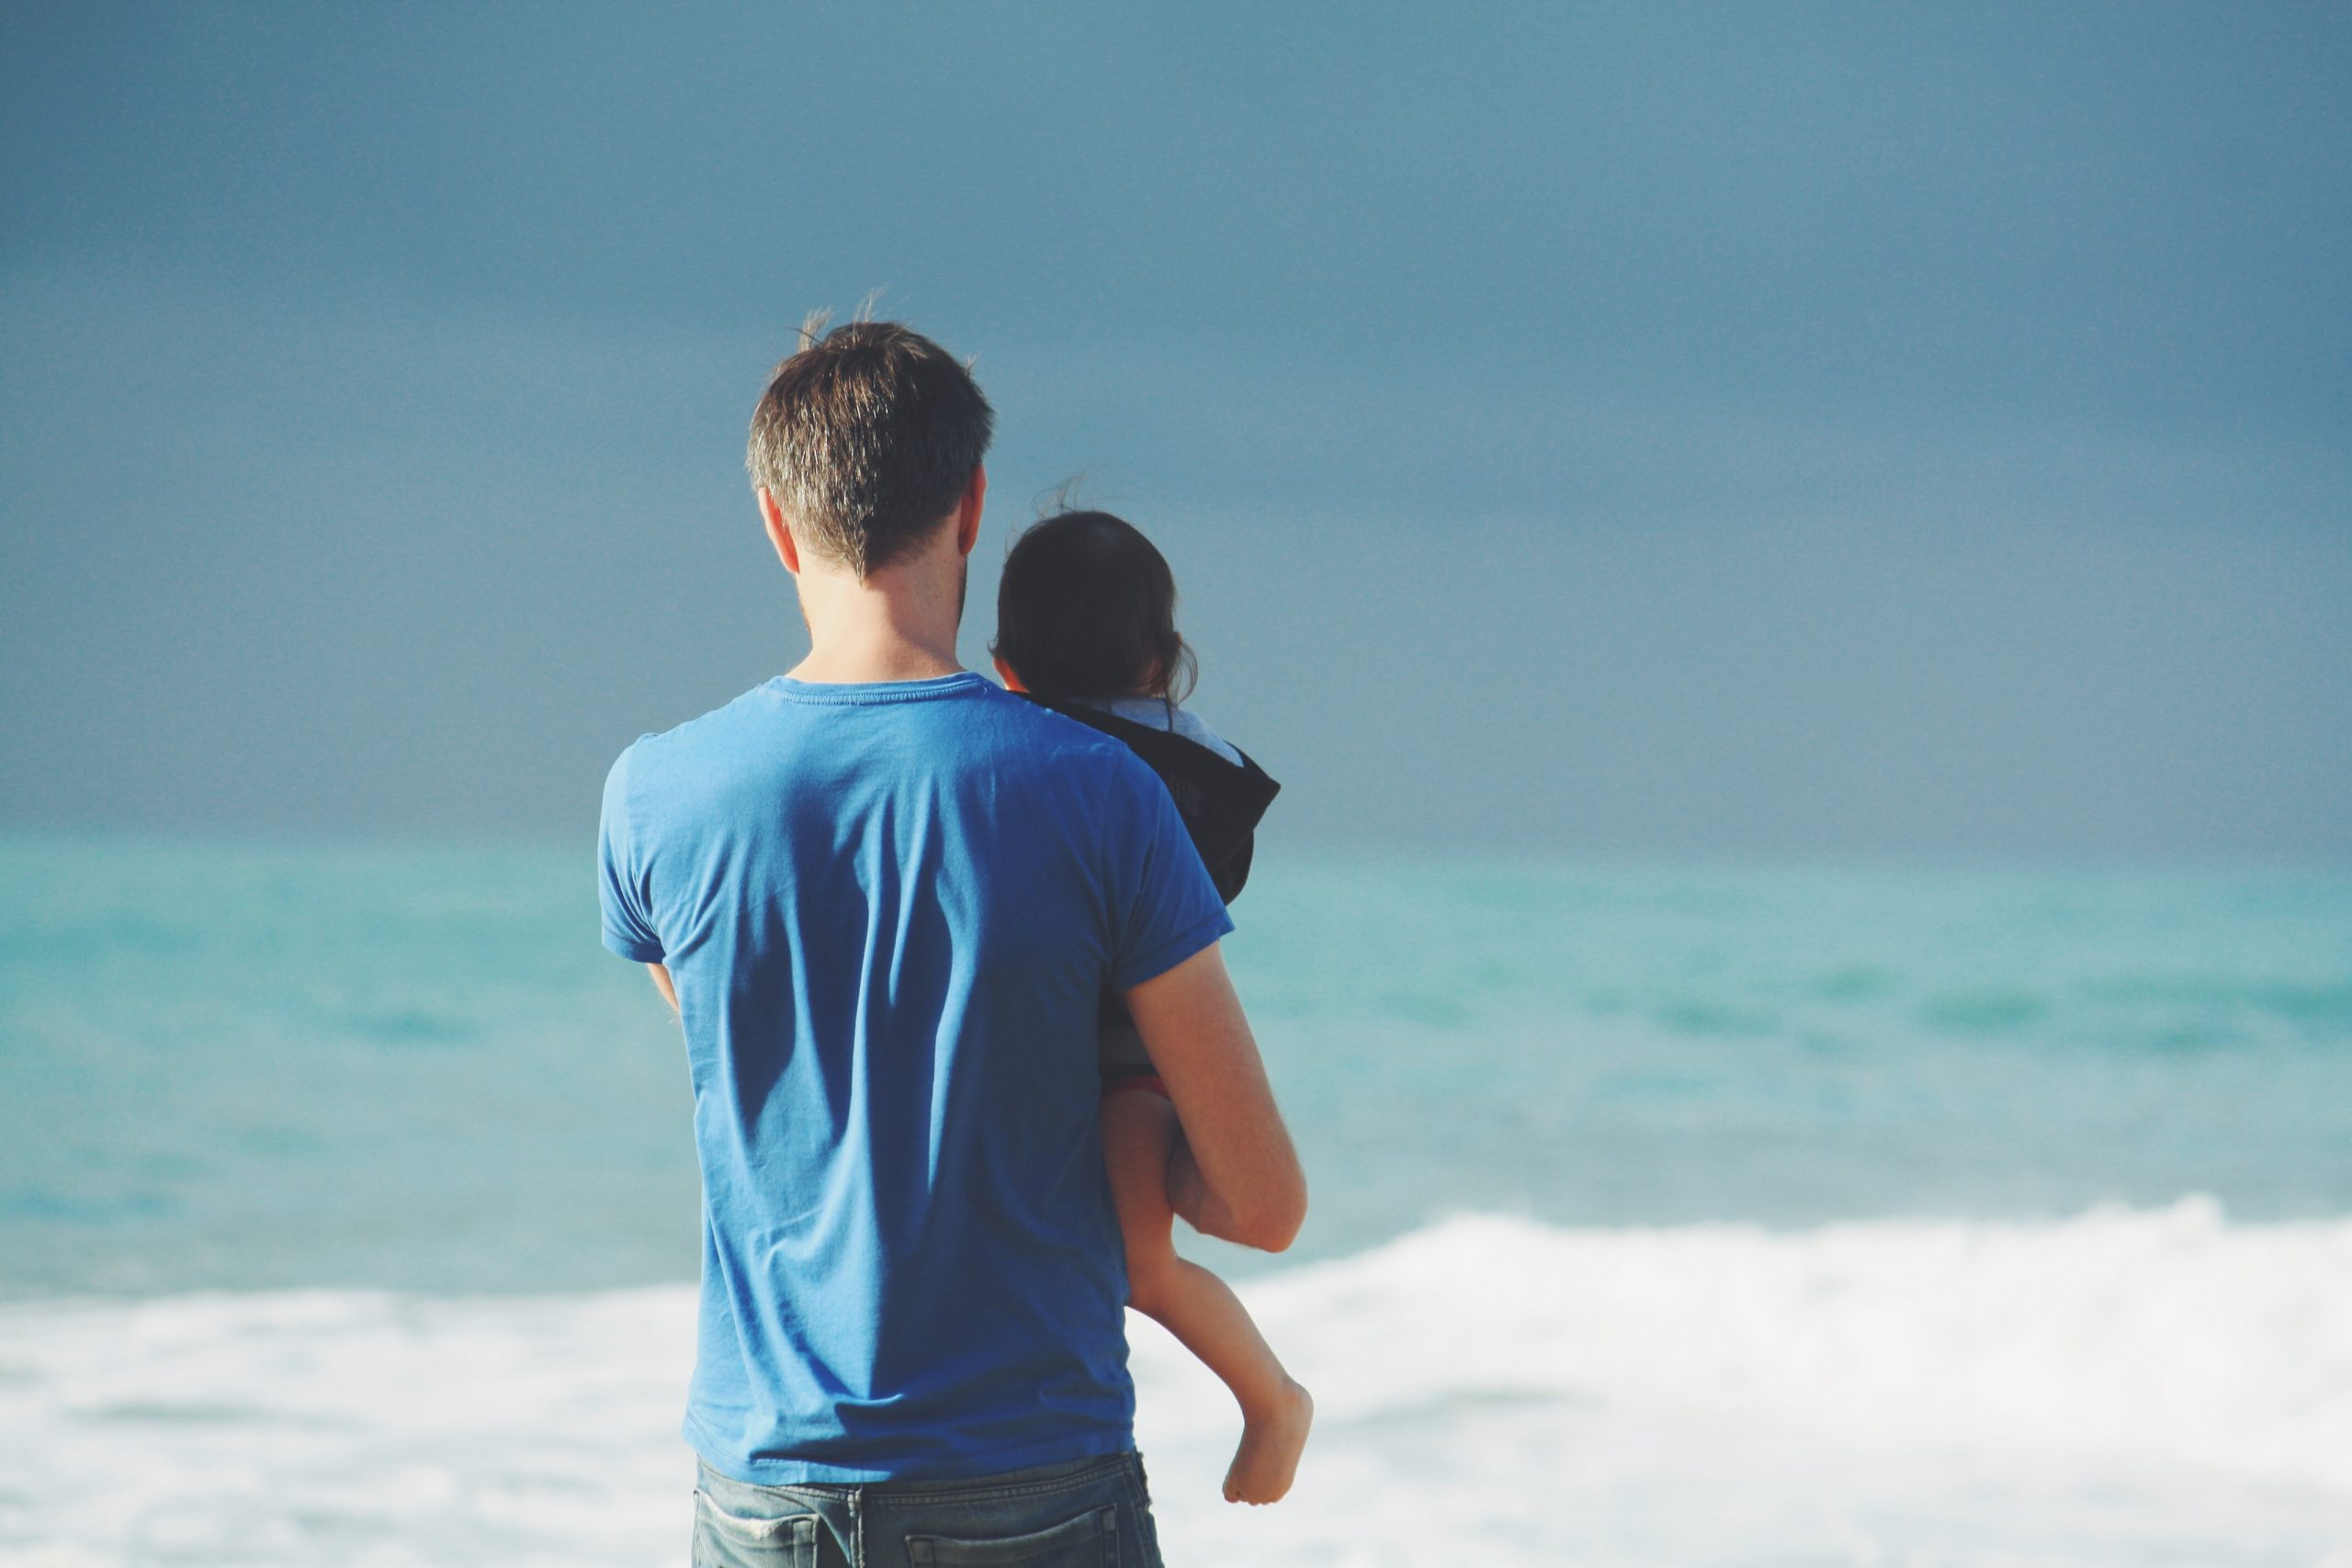 Dear Dads, The Ball is in Your Court